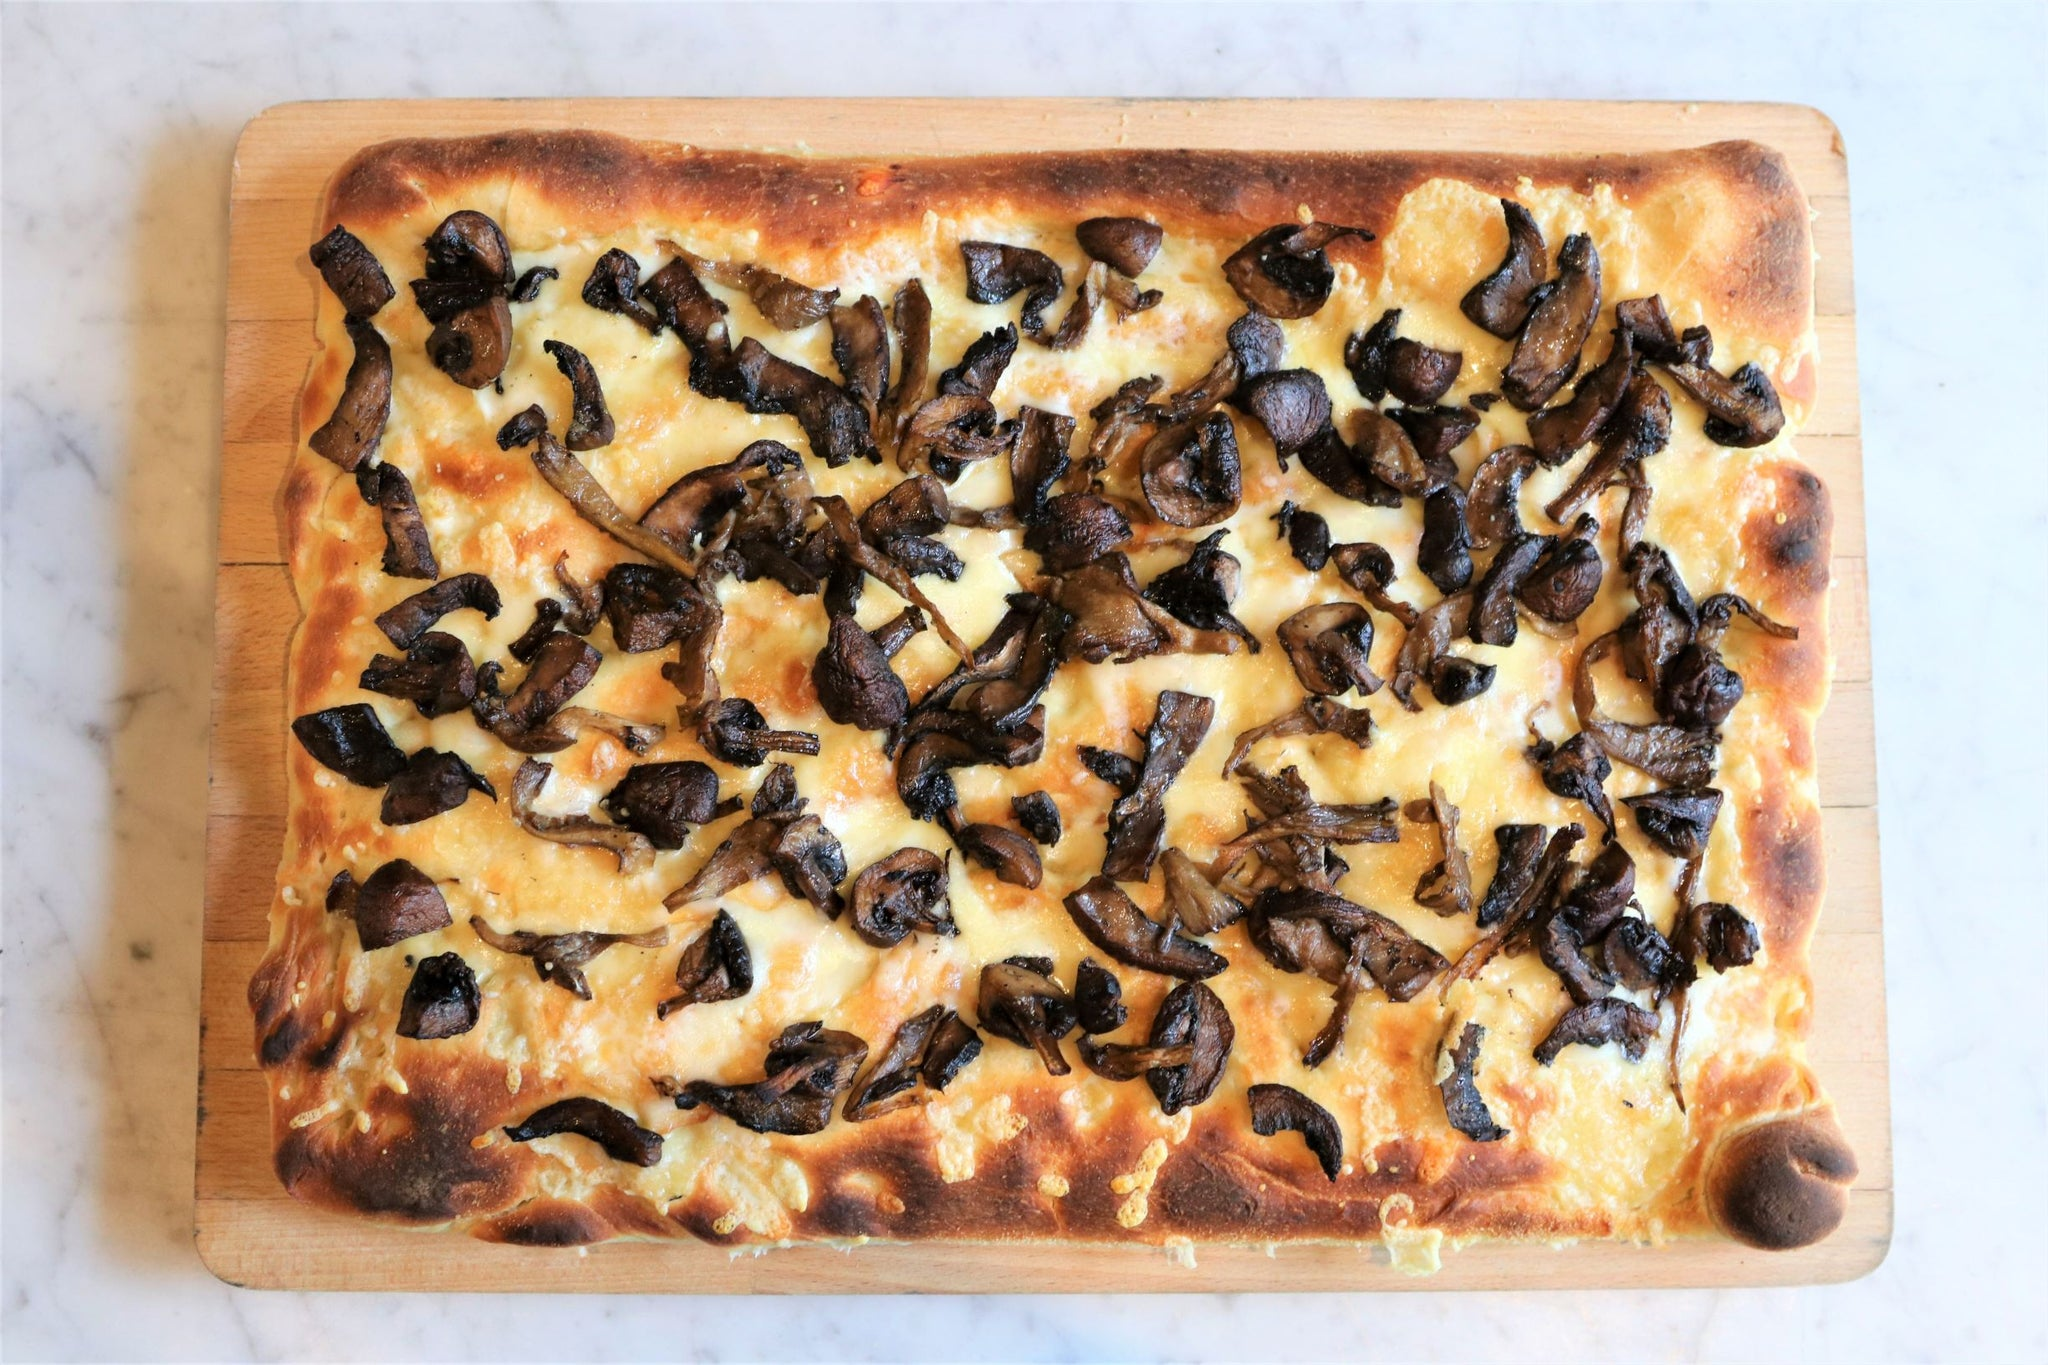 funghi pan pizza (12'x16', 12 slices)